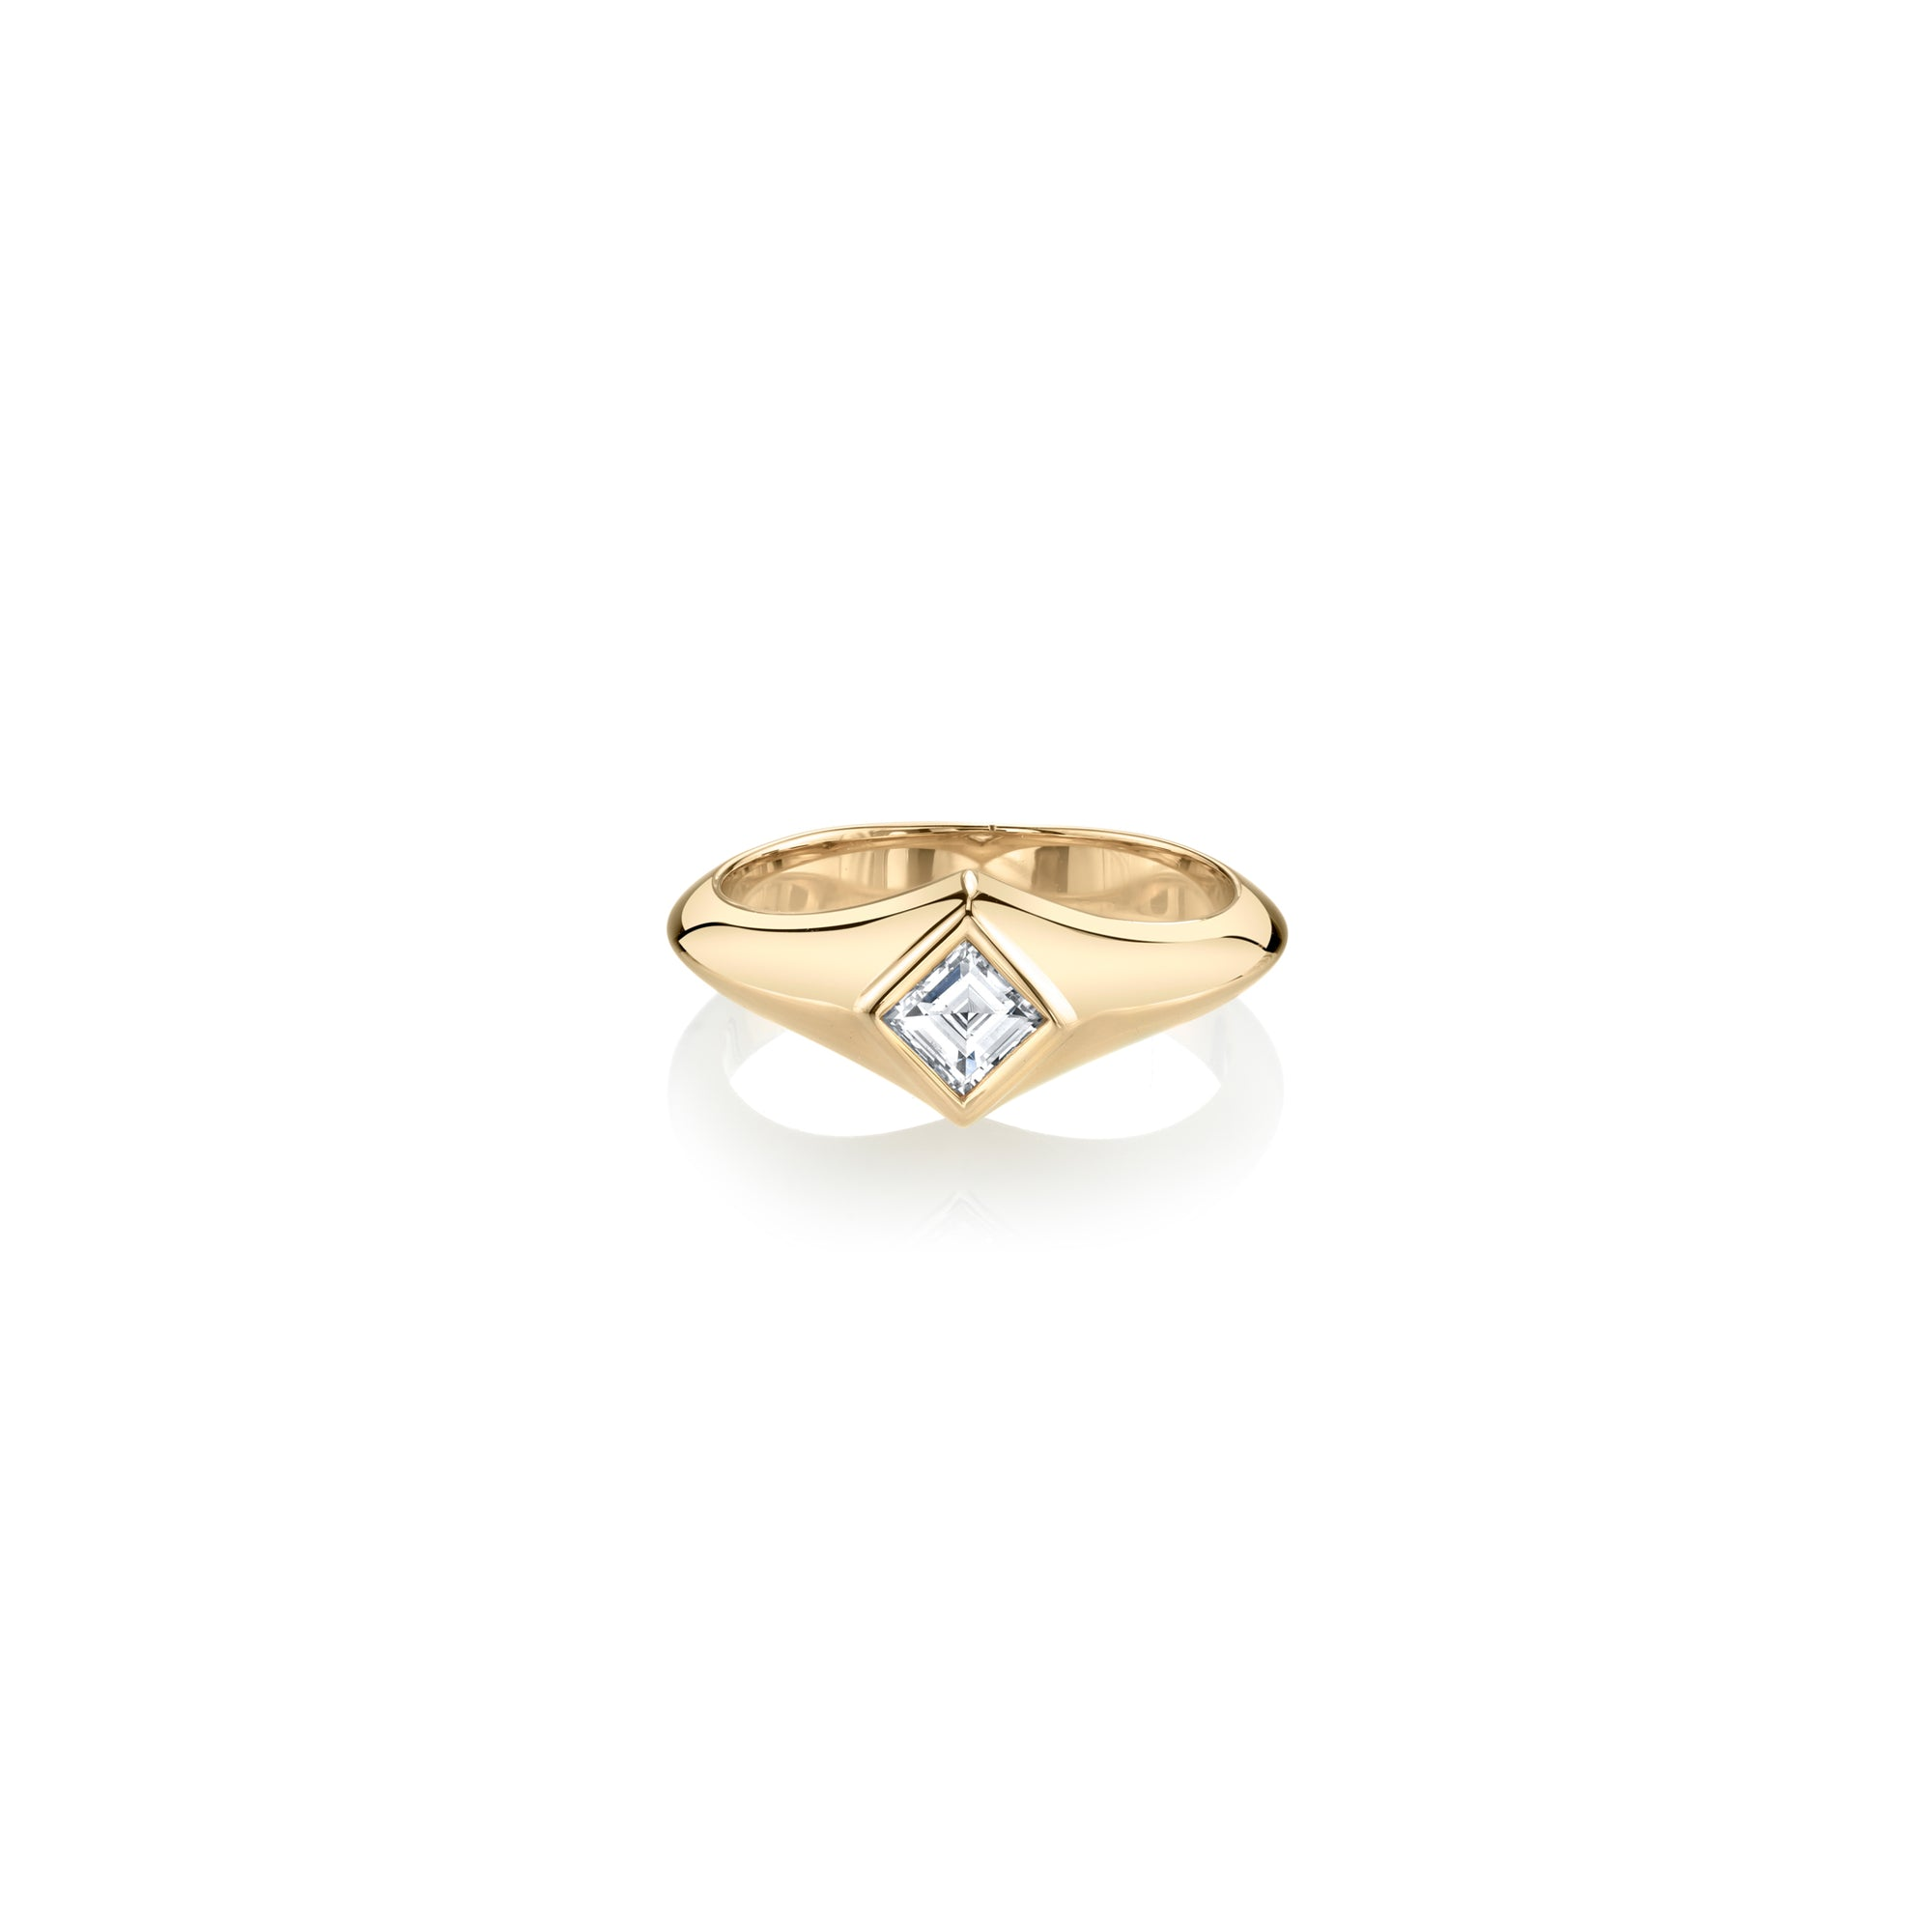 Carre Diamond Signet Knife Edge Pinky Ring